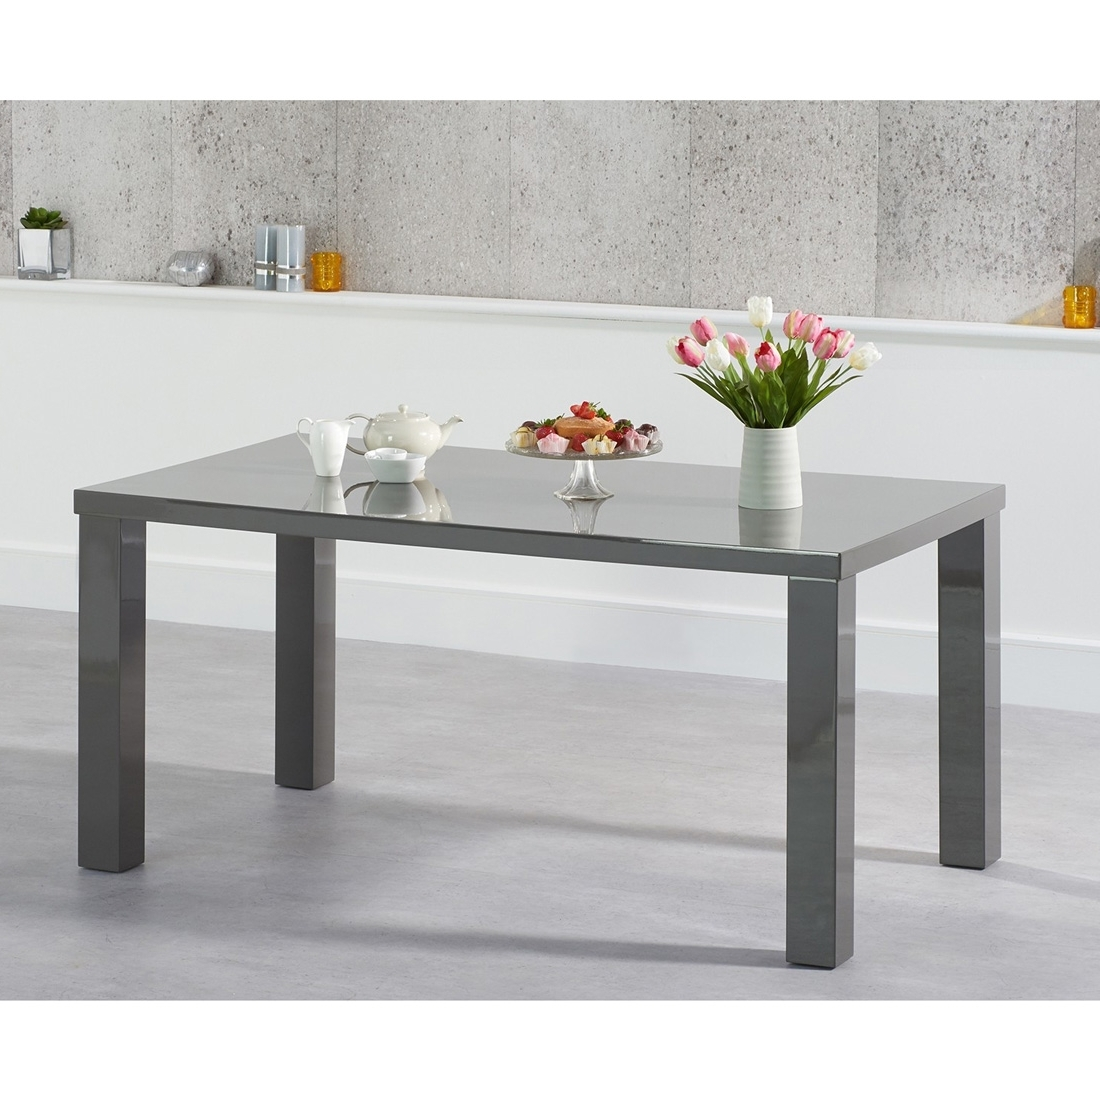 Fads With Regard To Latest Grey Gloss Dining Tables (View 7 of 25)